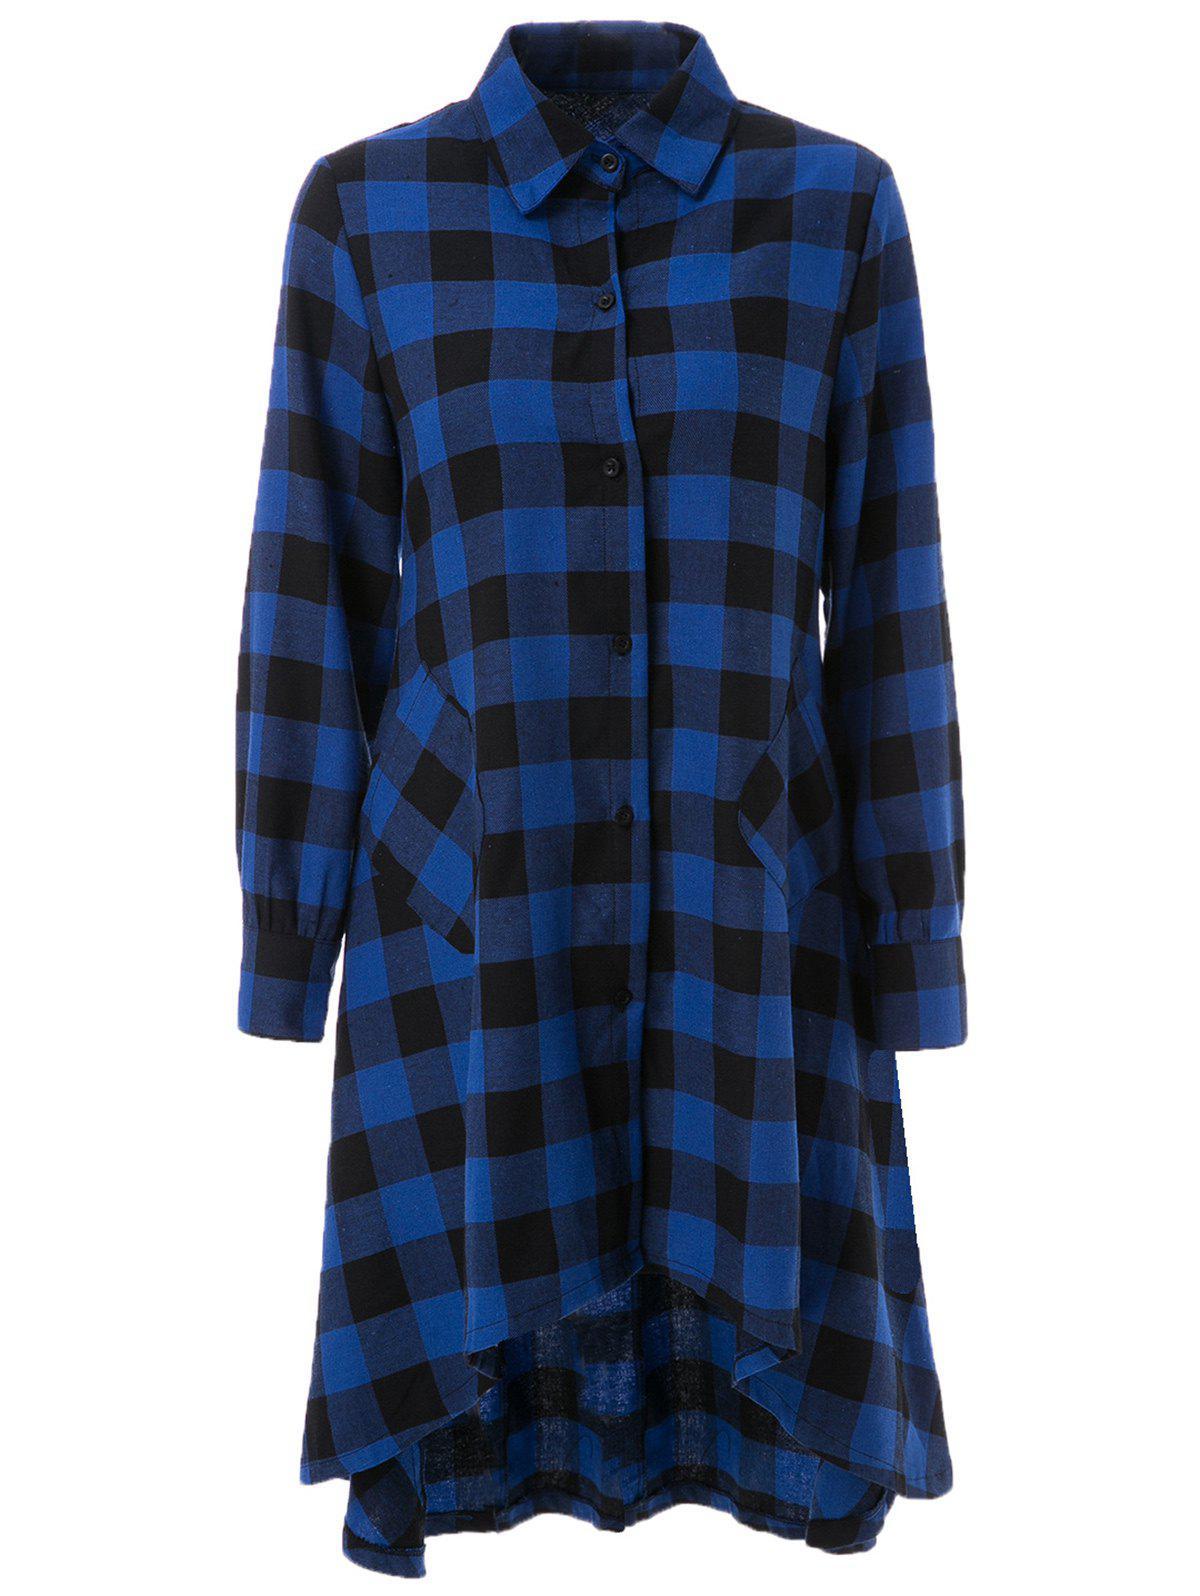 Long Sleeve Asymmetrical Plaid Dress For Women - BLUE/BLACK M